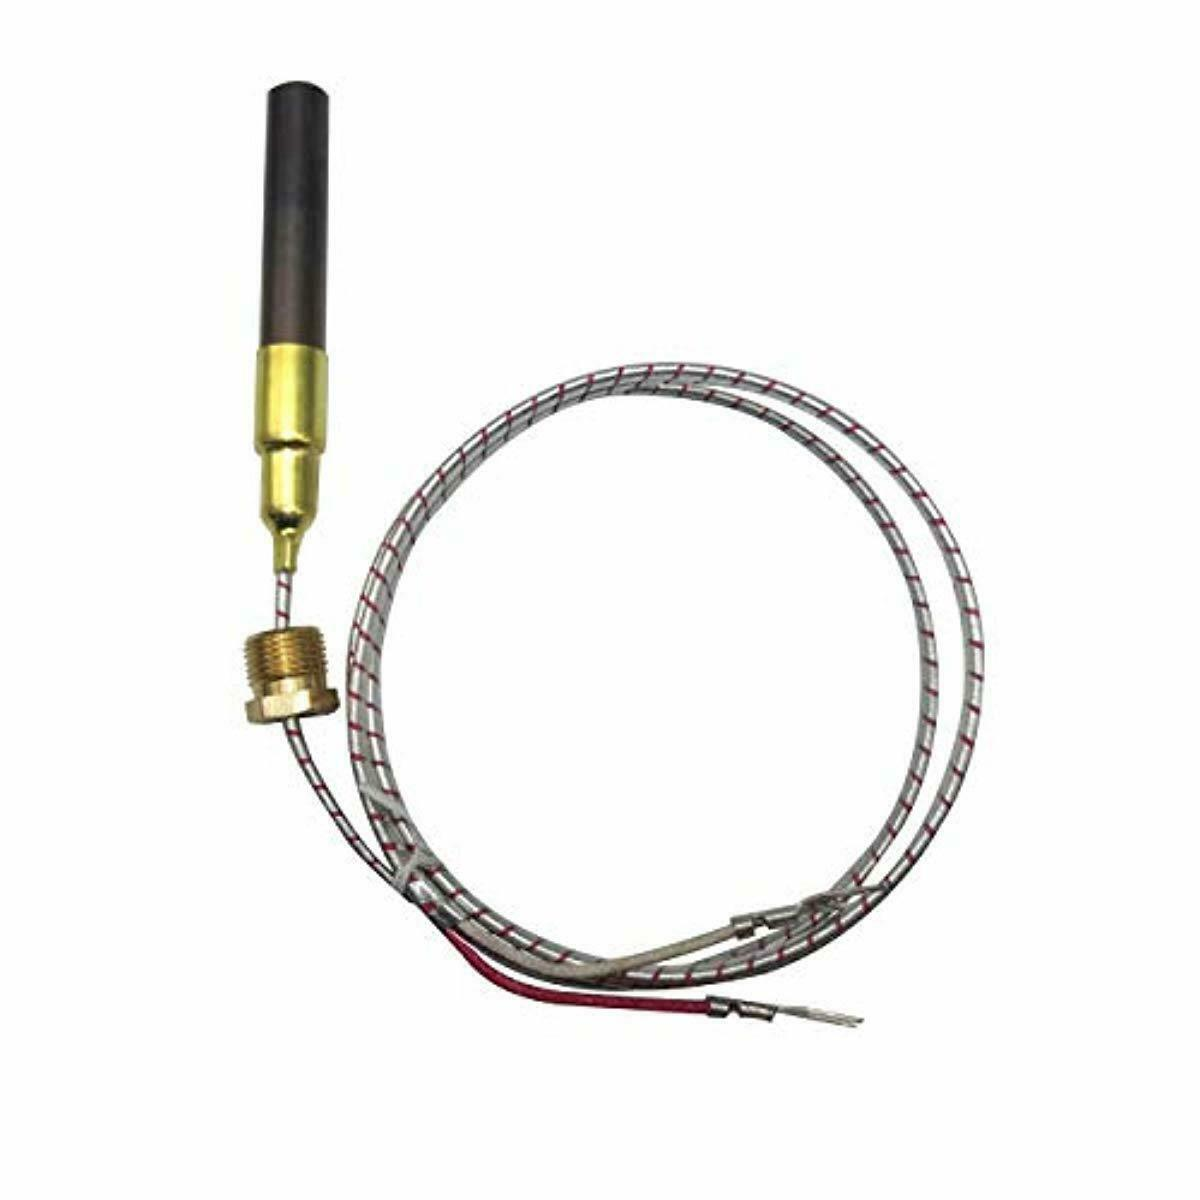 750mv Thermocouple For Heat Glo Heatilator Fireplace